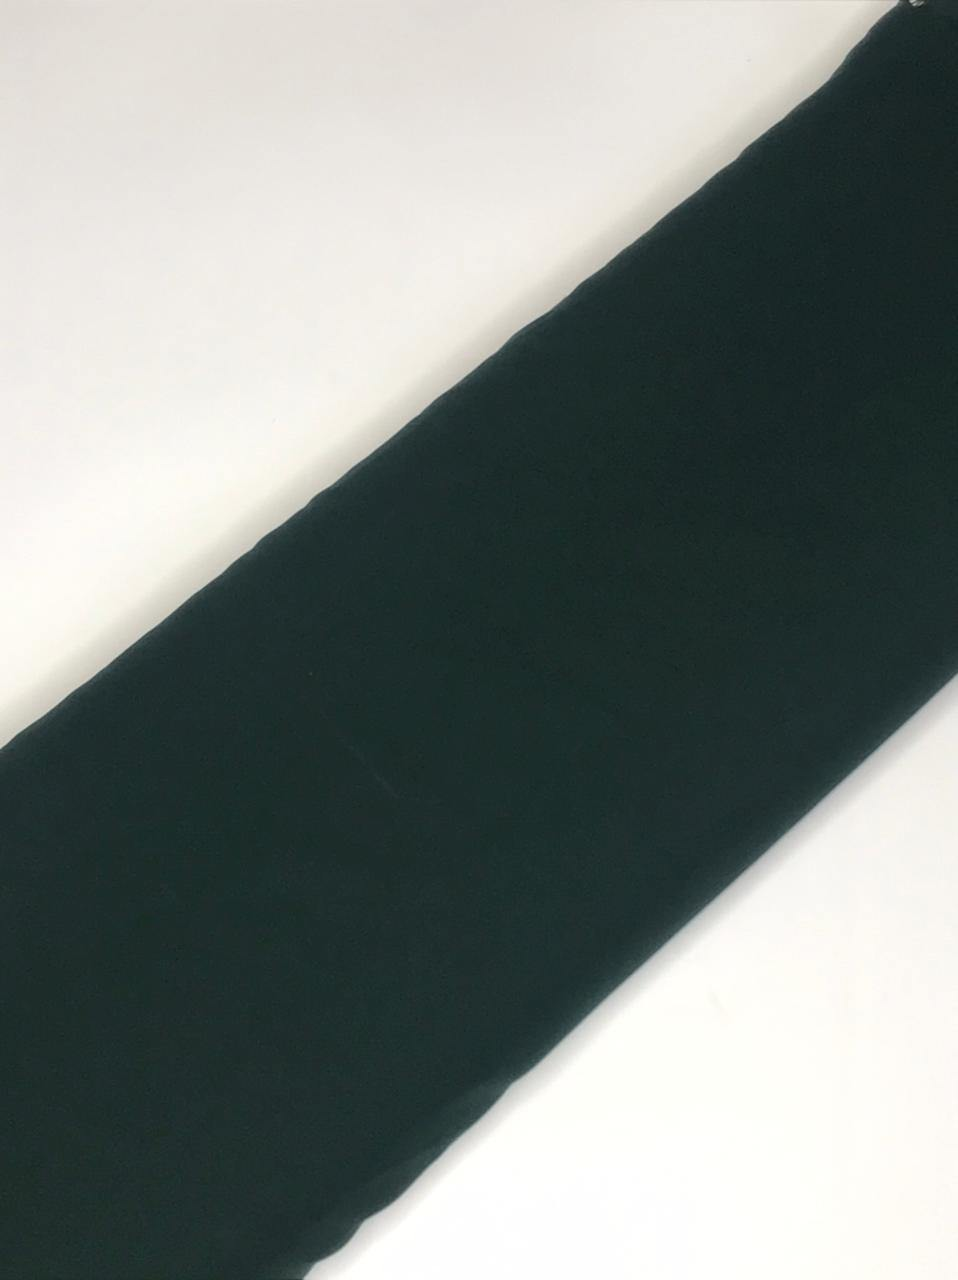 Imported Mahagony Emerald Green Flowy Fabric (Width - 58 Inches)